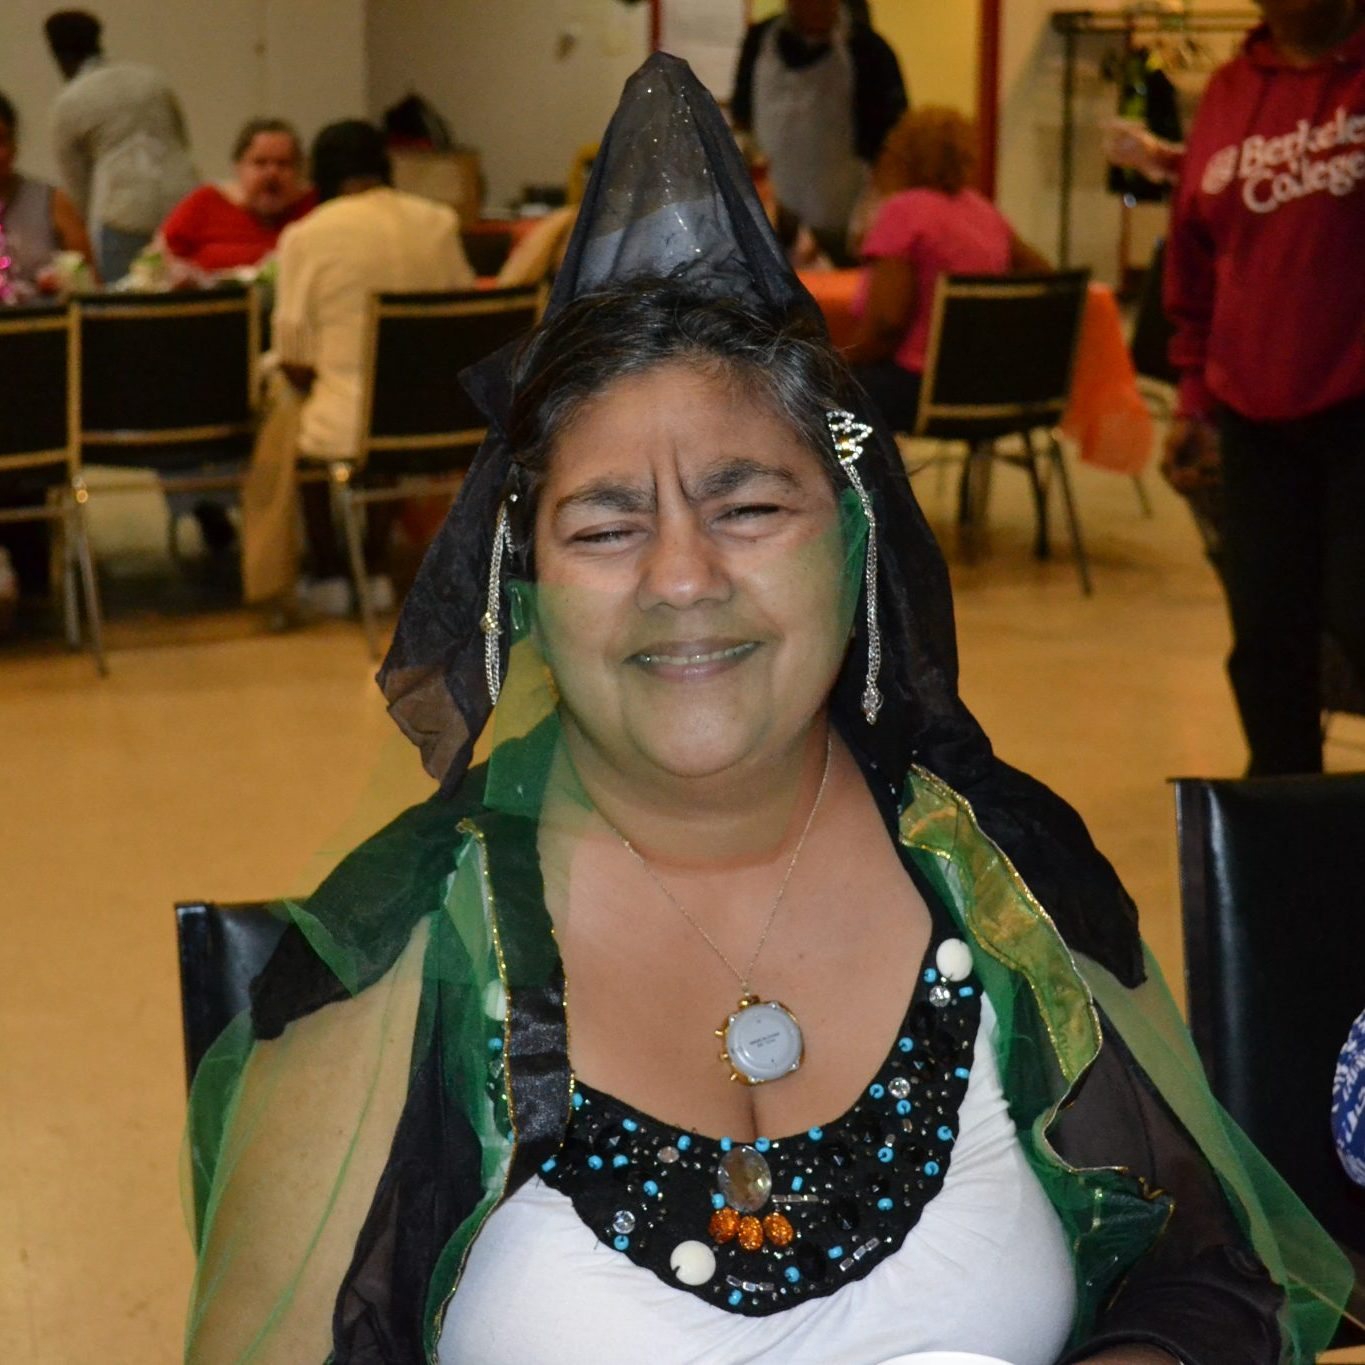 Senior Center - Maria A halloween